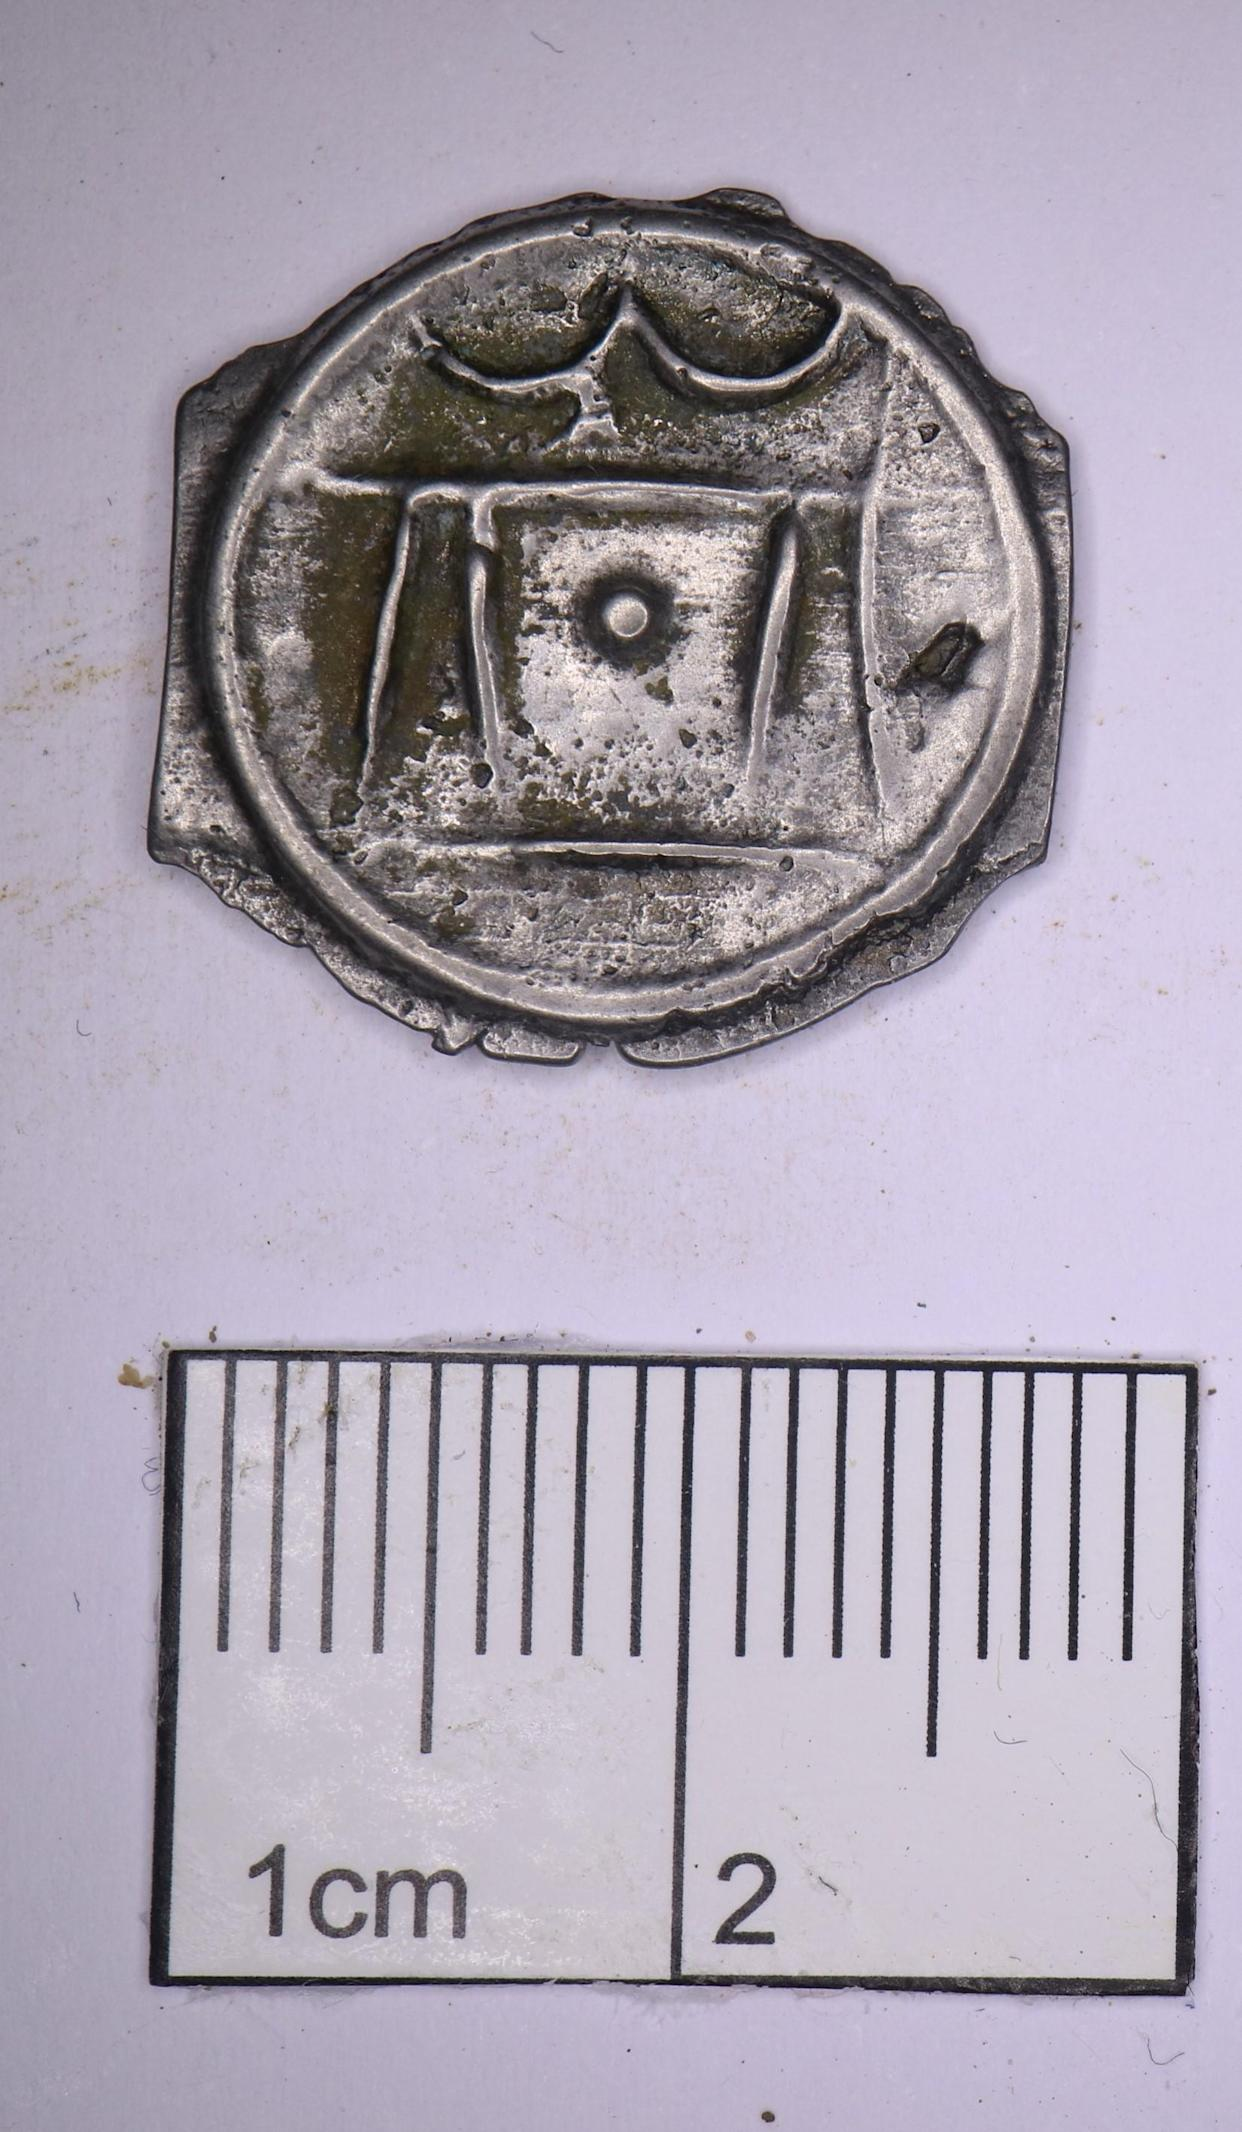 A rare historic coin found by archaeologists working on the HS2 route in Hillingdon, west London, after excavation (HS2/PA).